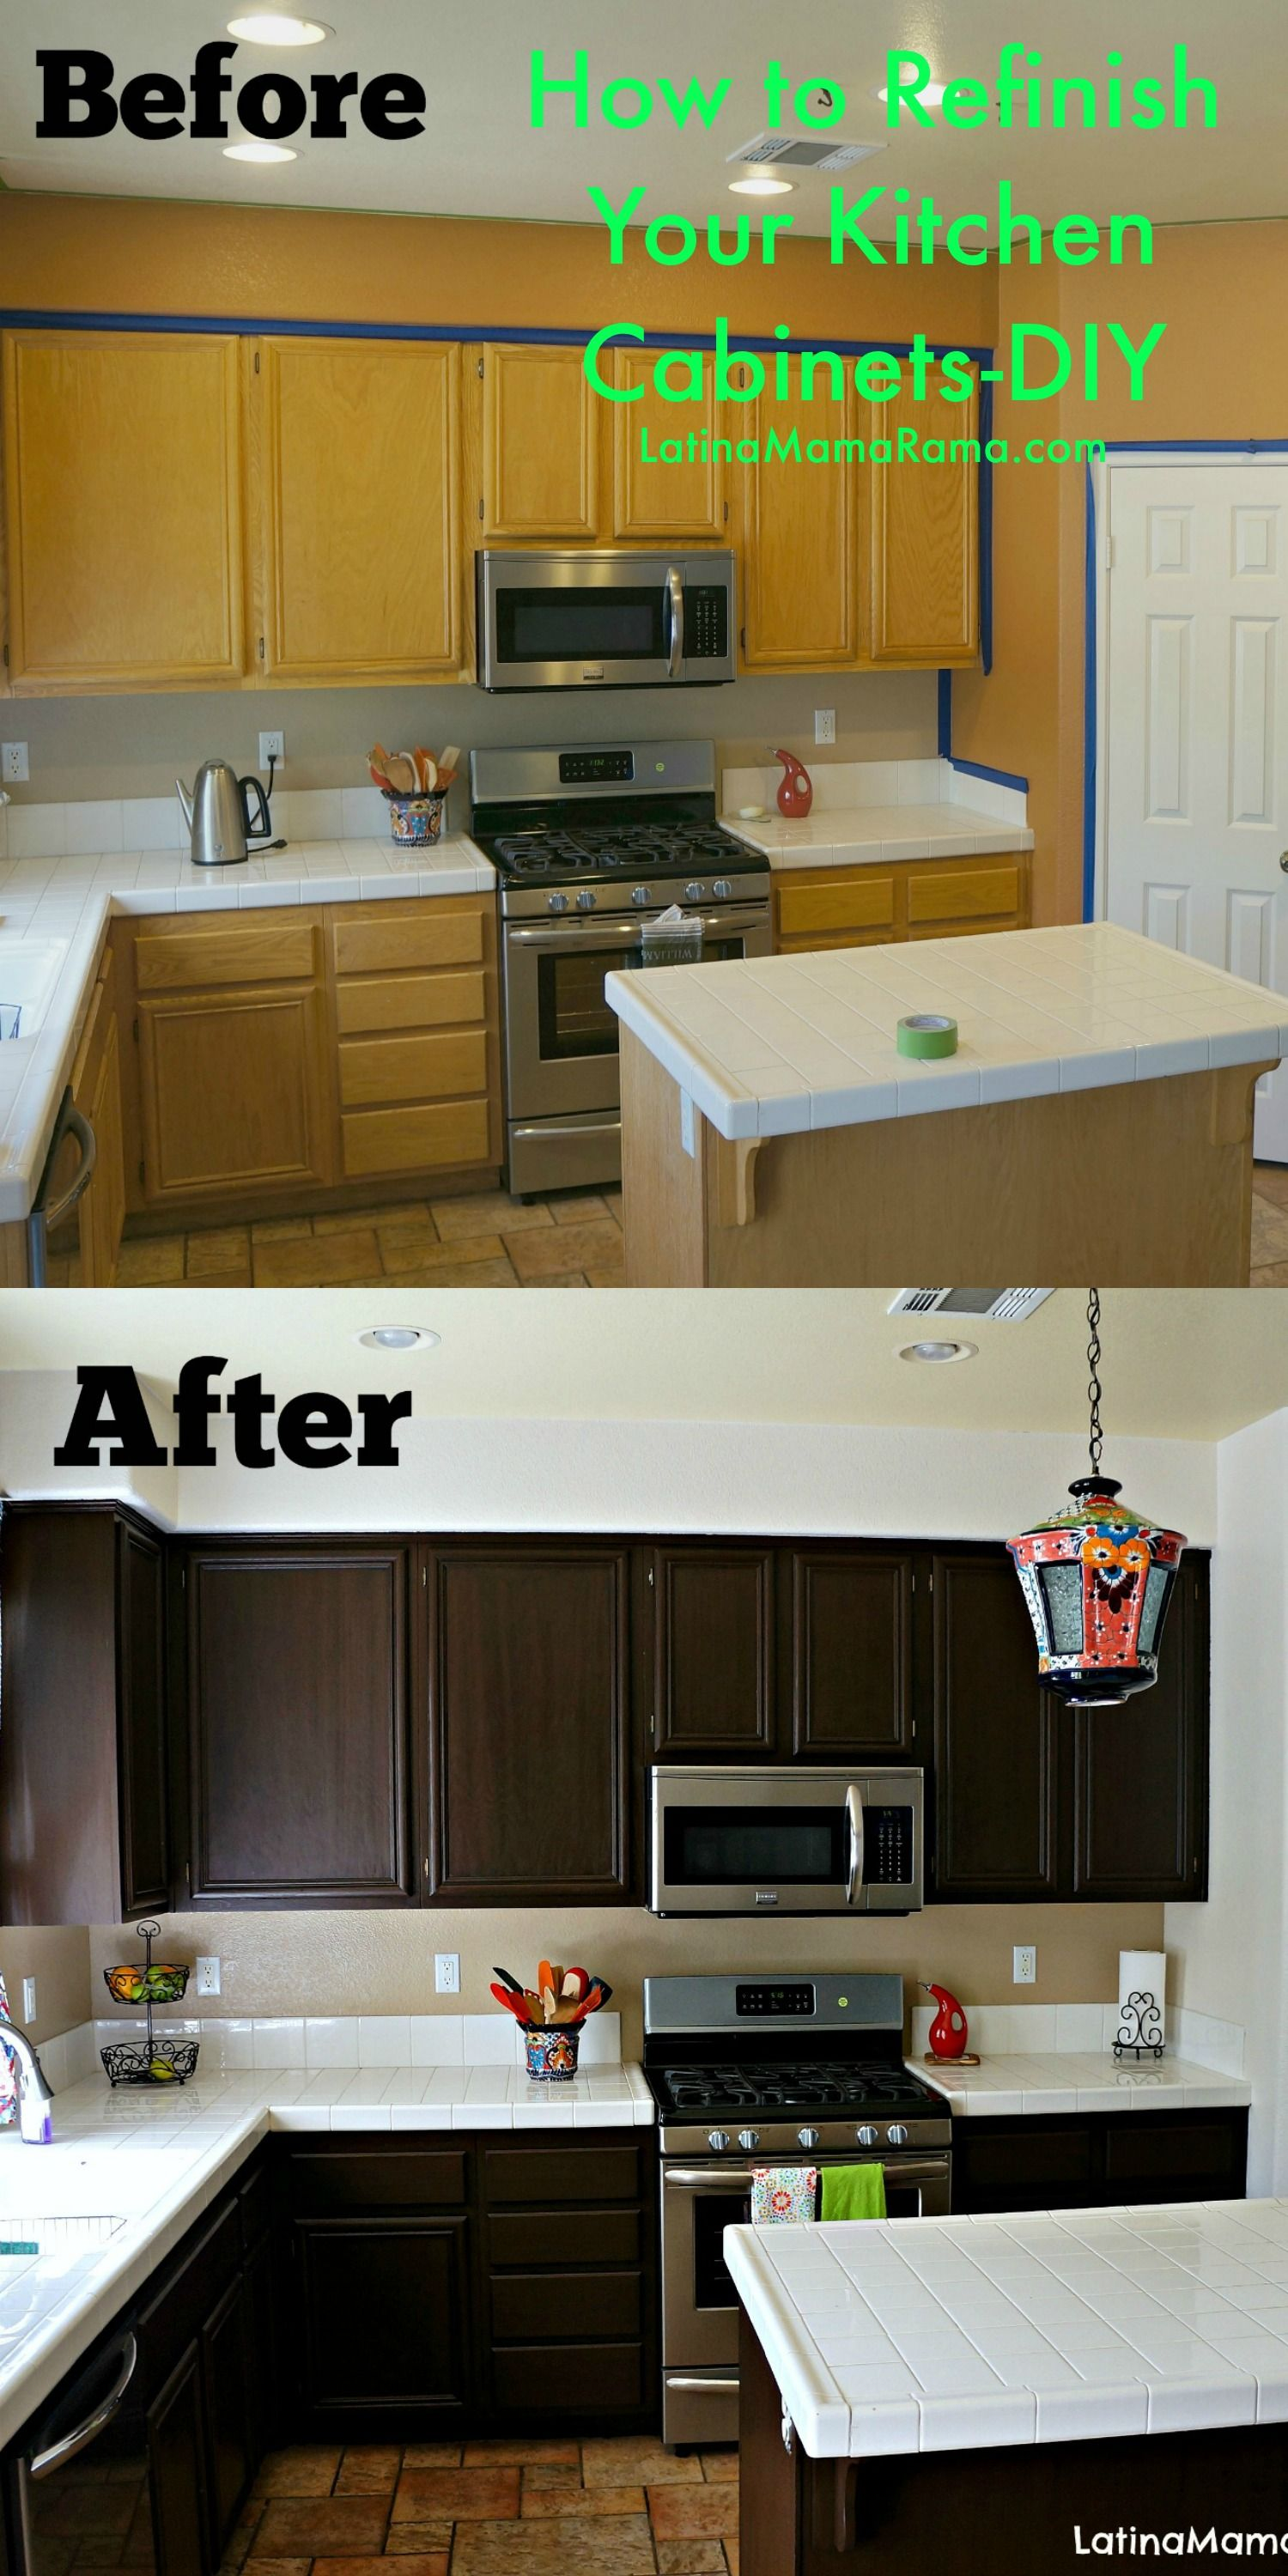 refinish kitchen cabinets How to Refinish Your Kitchen Cabinets